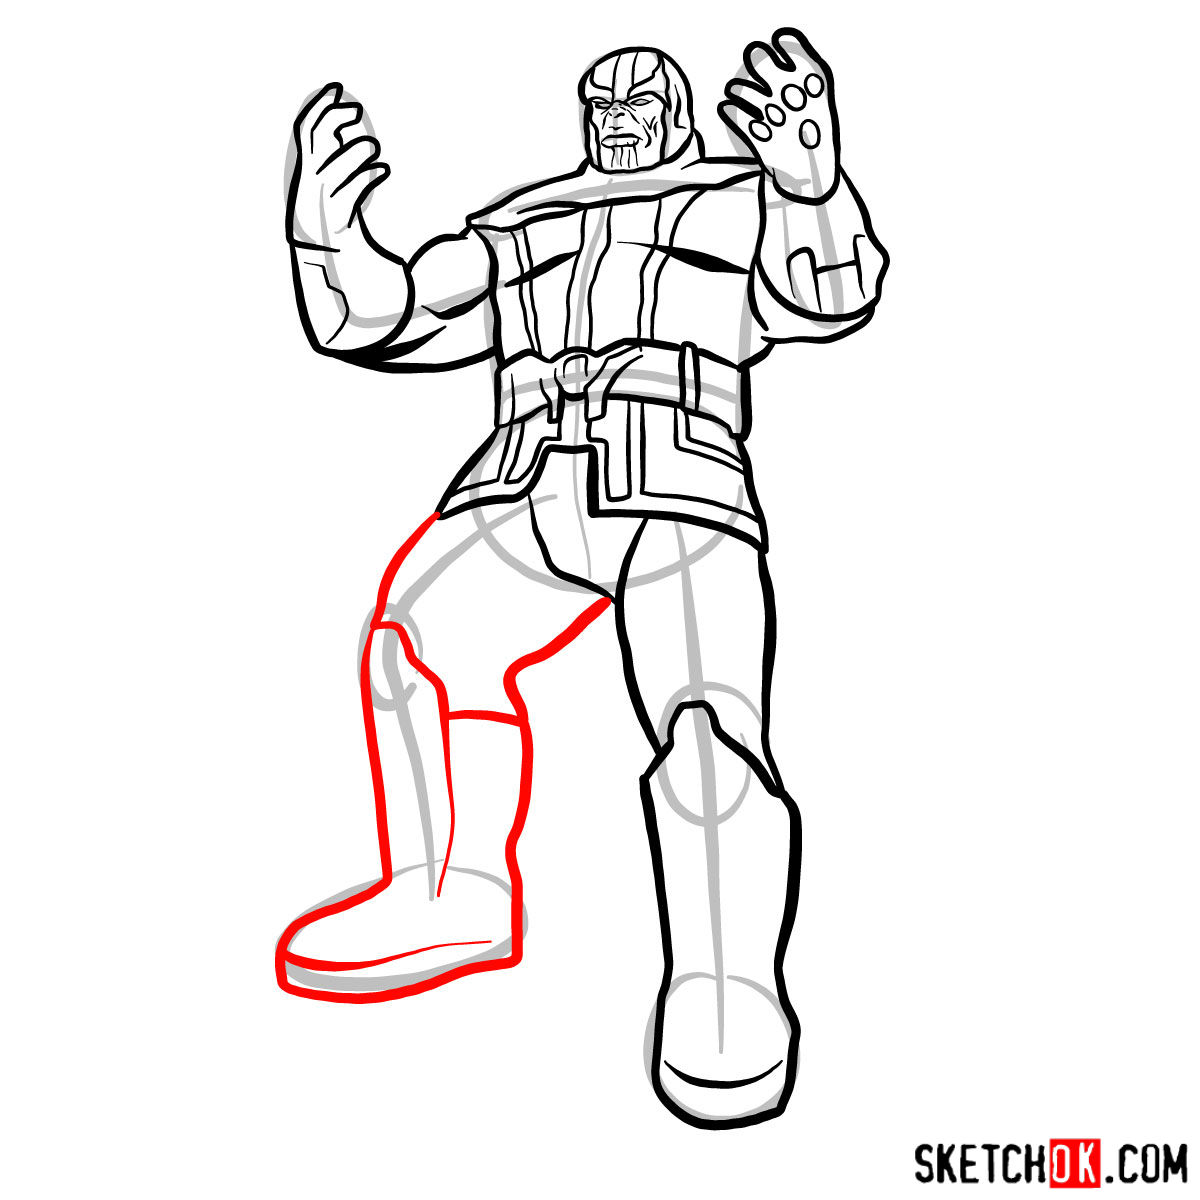 How to draw Thanos with 5 Infinity Stones - step 14